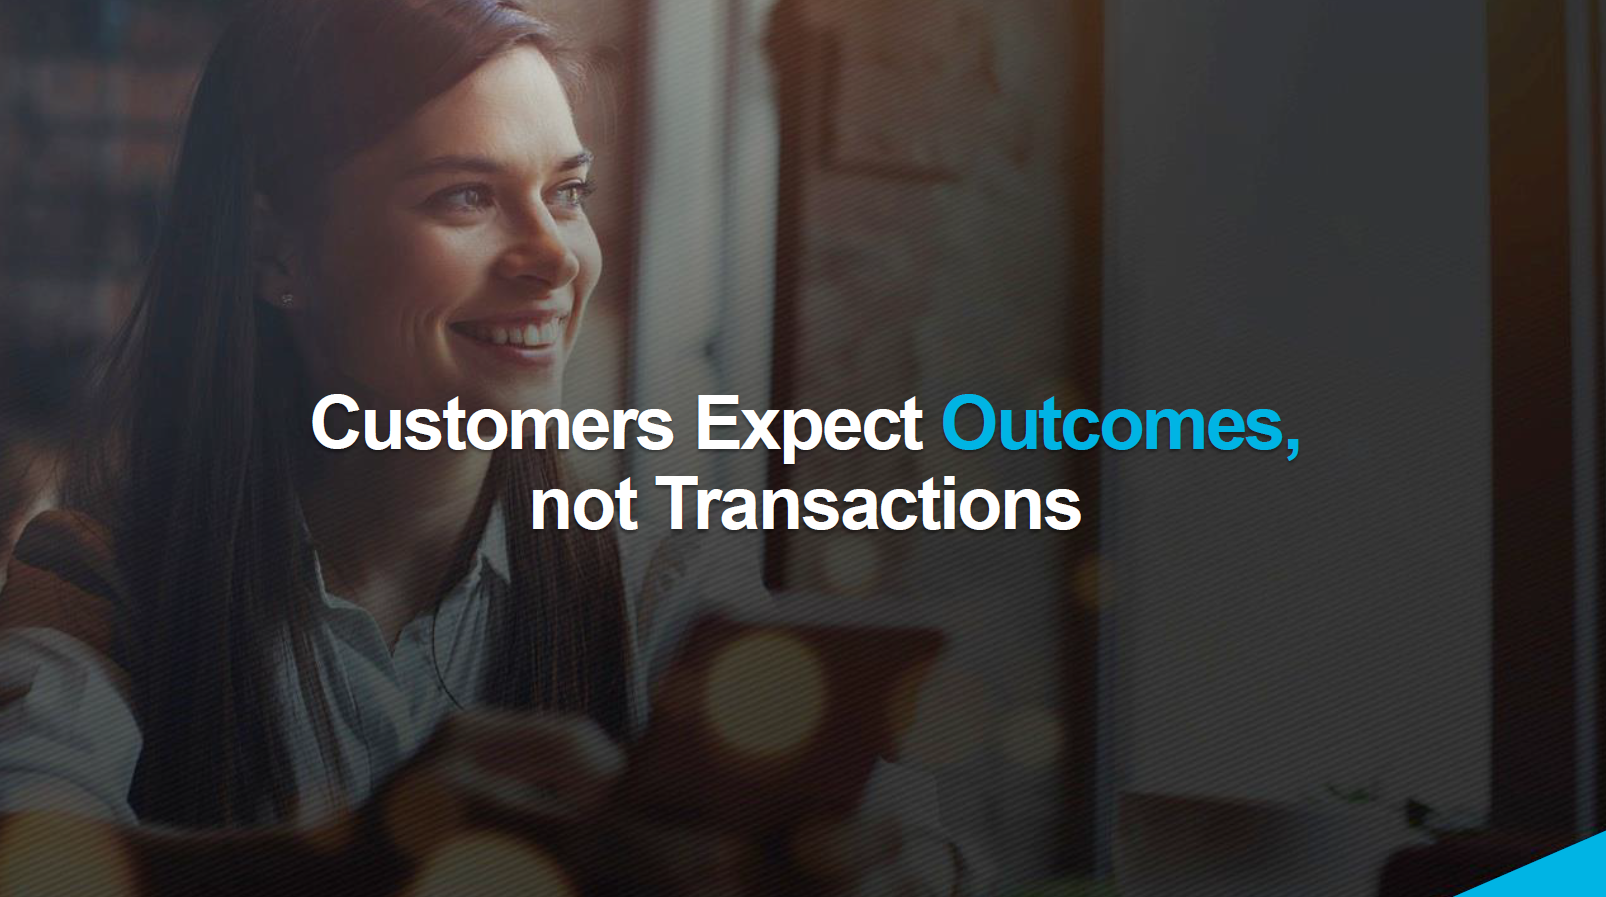 Customers expect outcomes not transactions